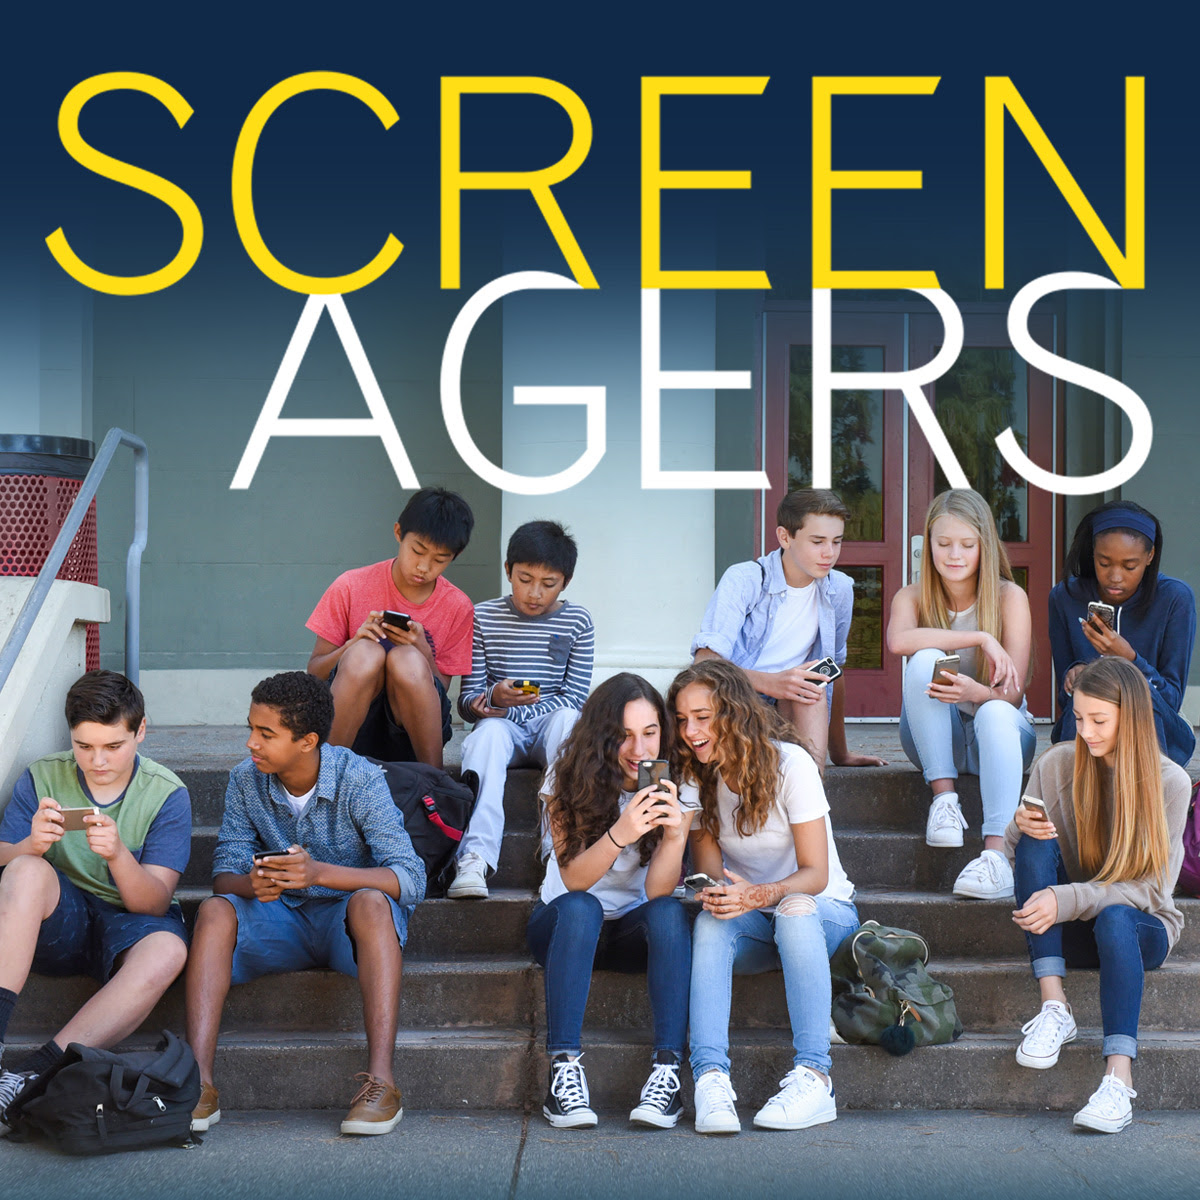 Screenagers Film Presented By Fairfield City Schools